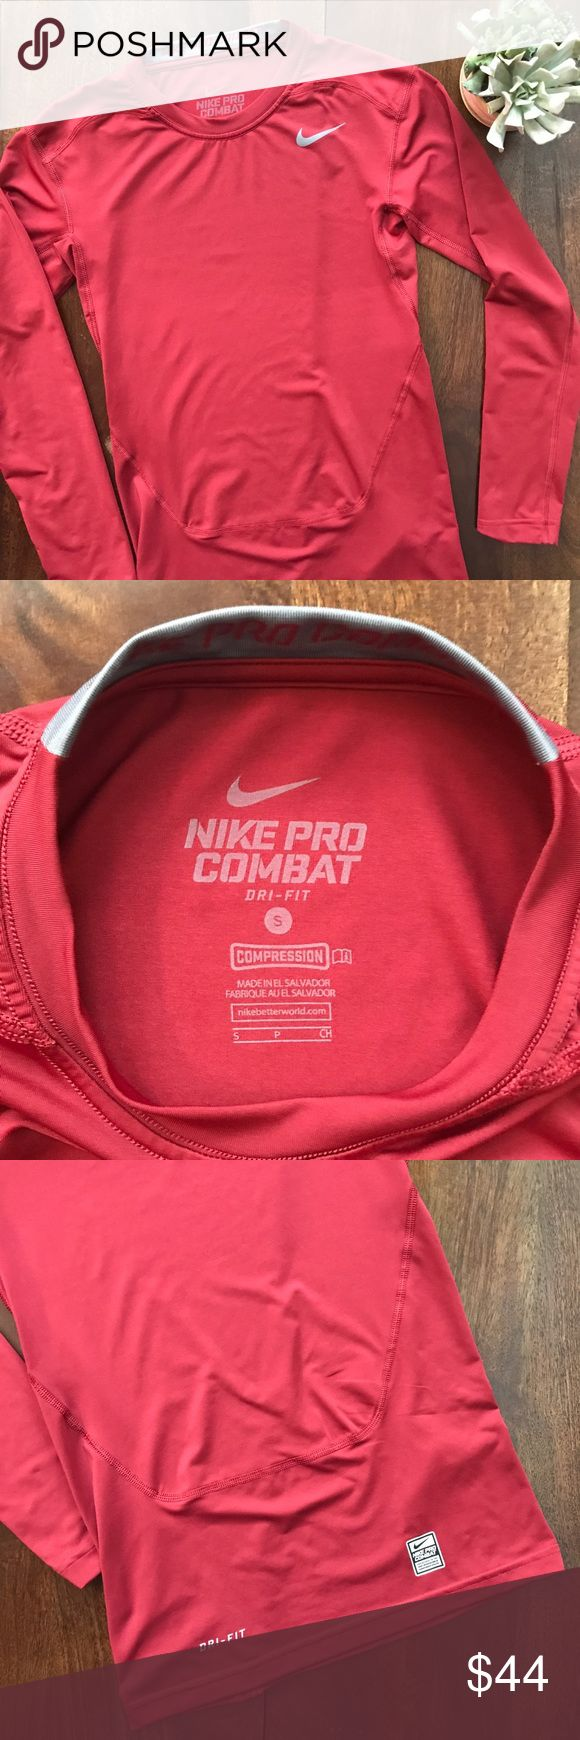 Nike • pro combat compression long sleeve Nike • pro combat • compression • dark red • breathable mesh in underarm area • dri-fit • excellent condition • all measurements were taken flat and are approximate: pit to pit 14.5"